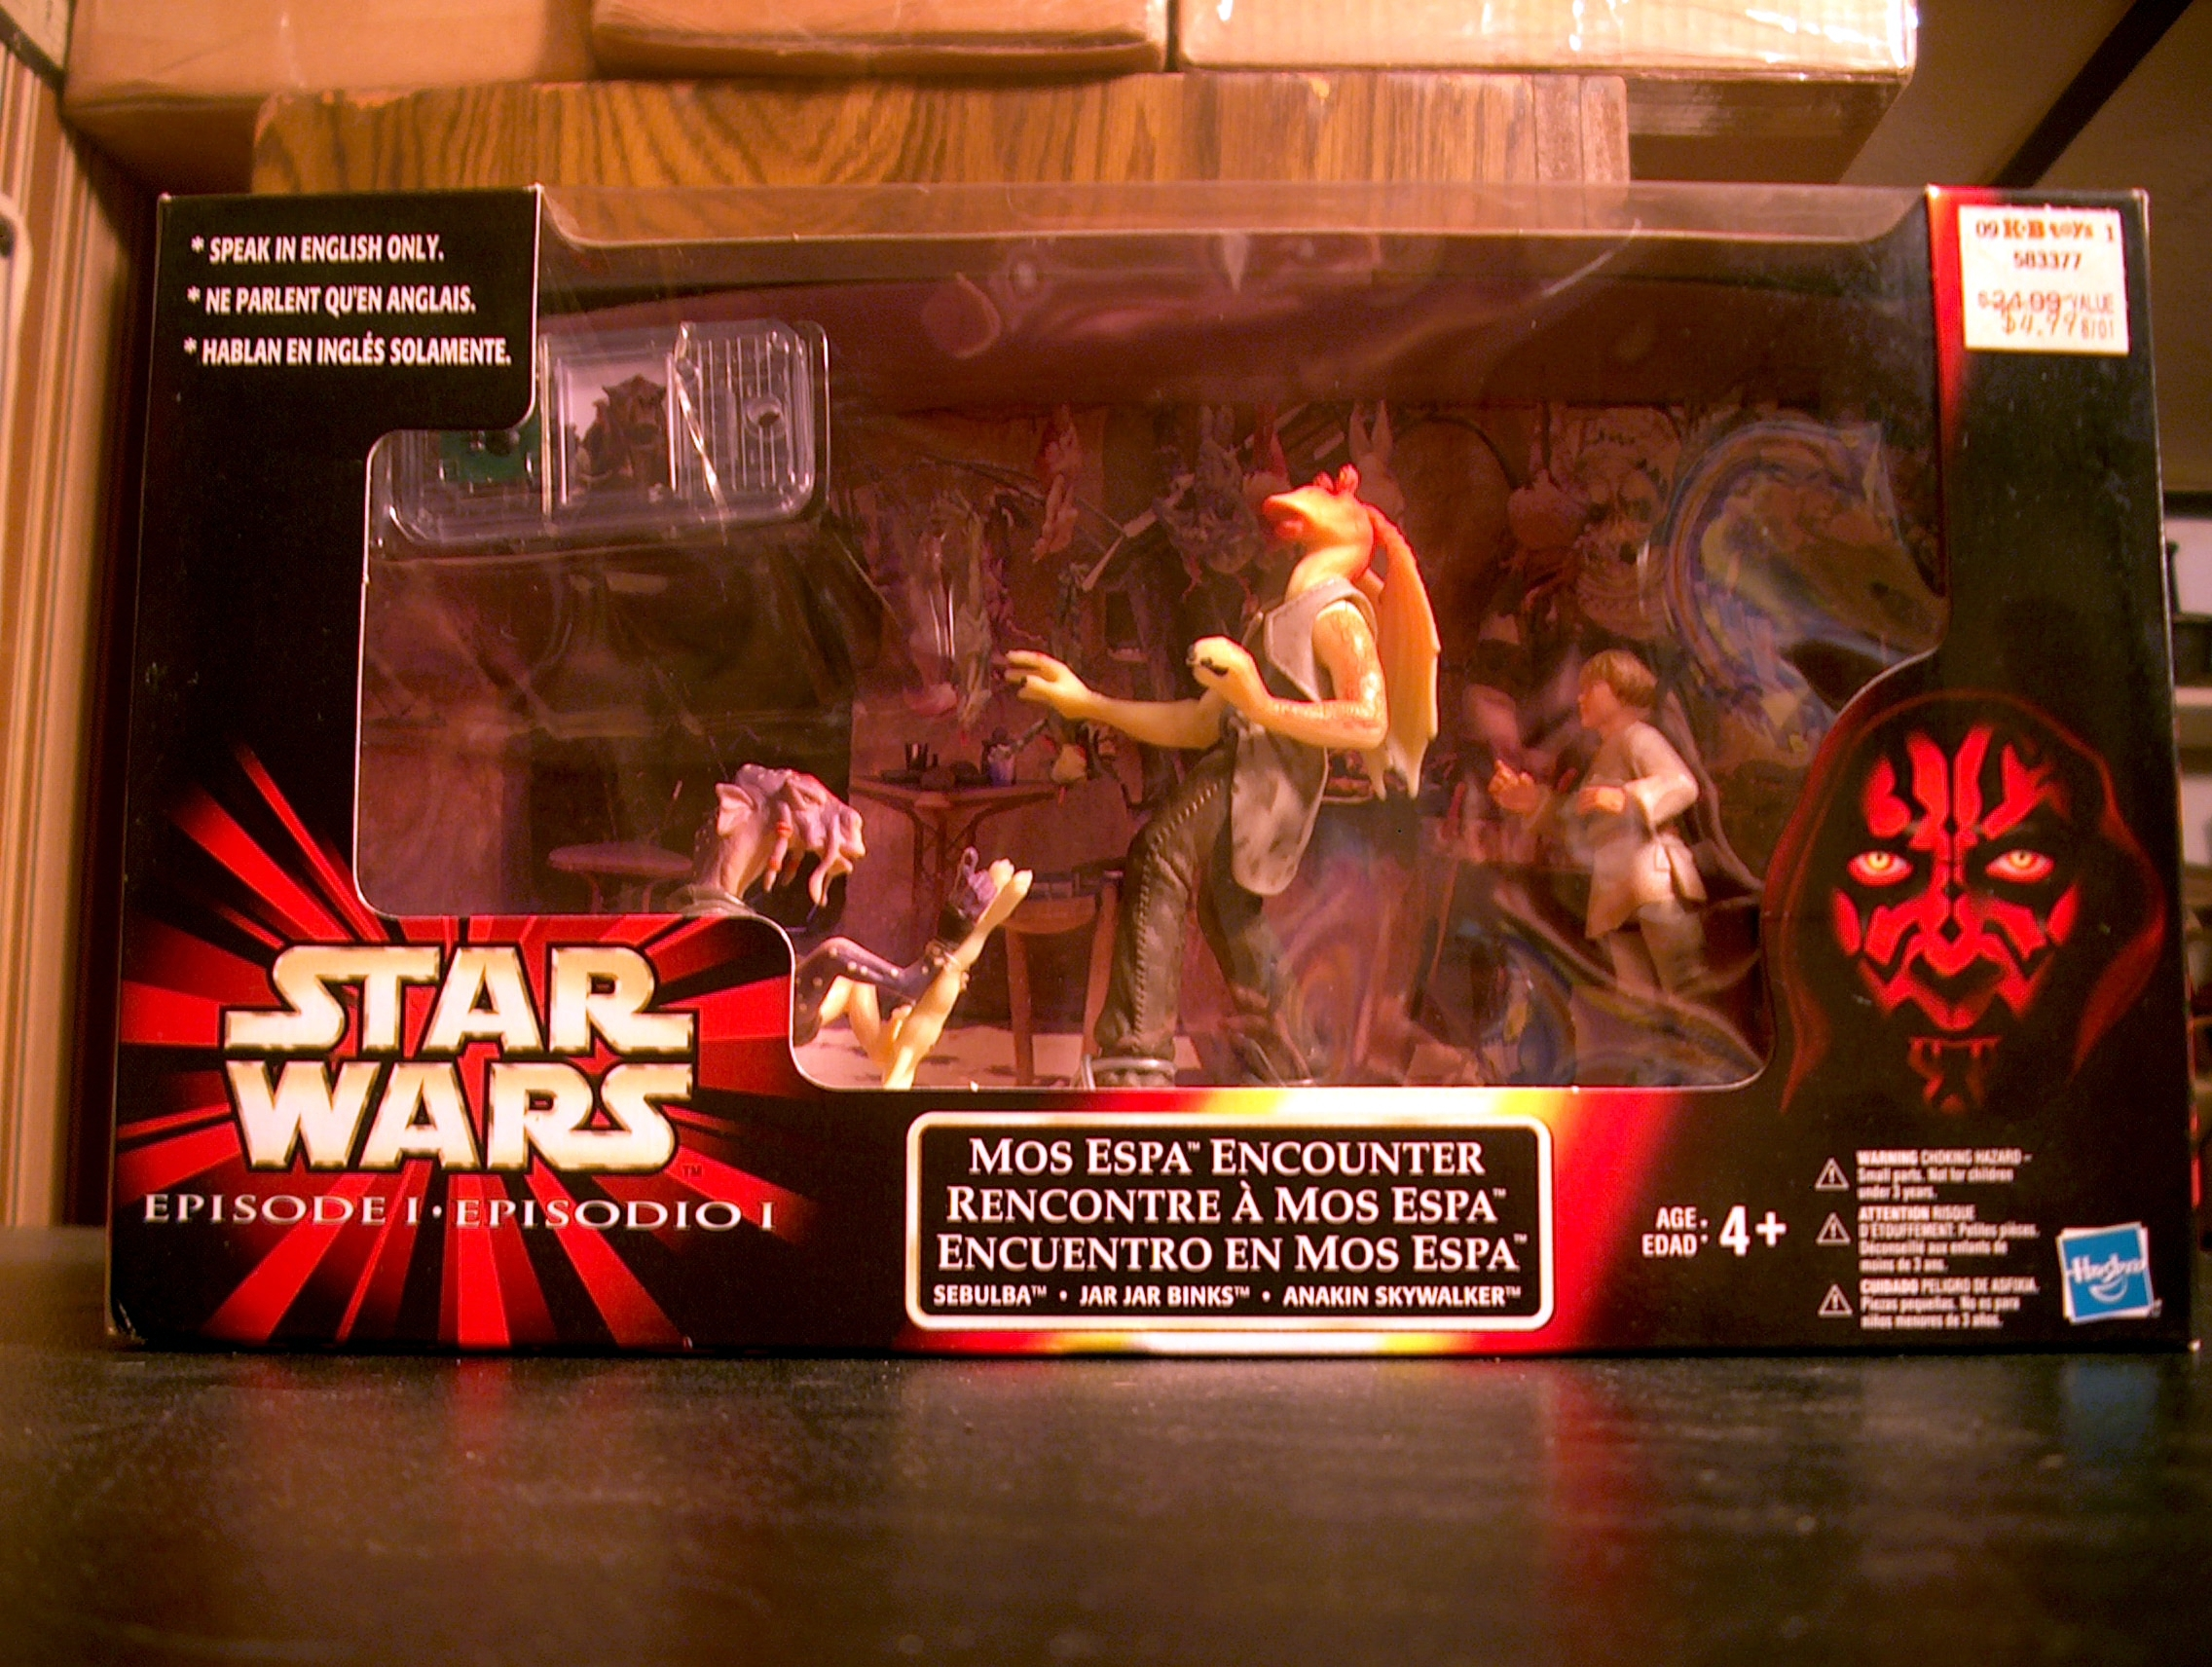 Mos Espa Encounter (Sebula - Jar Jar Binks - Anakin Skywalker) (3-Pack)